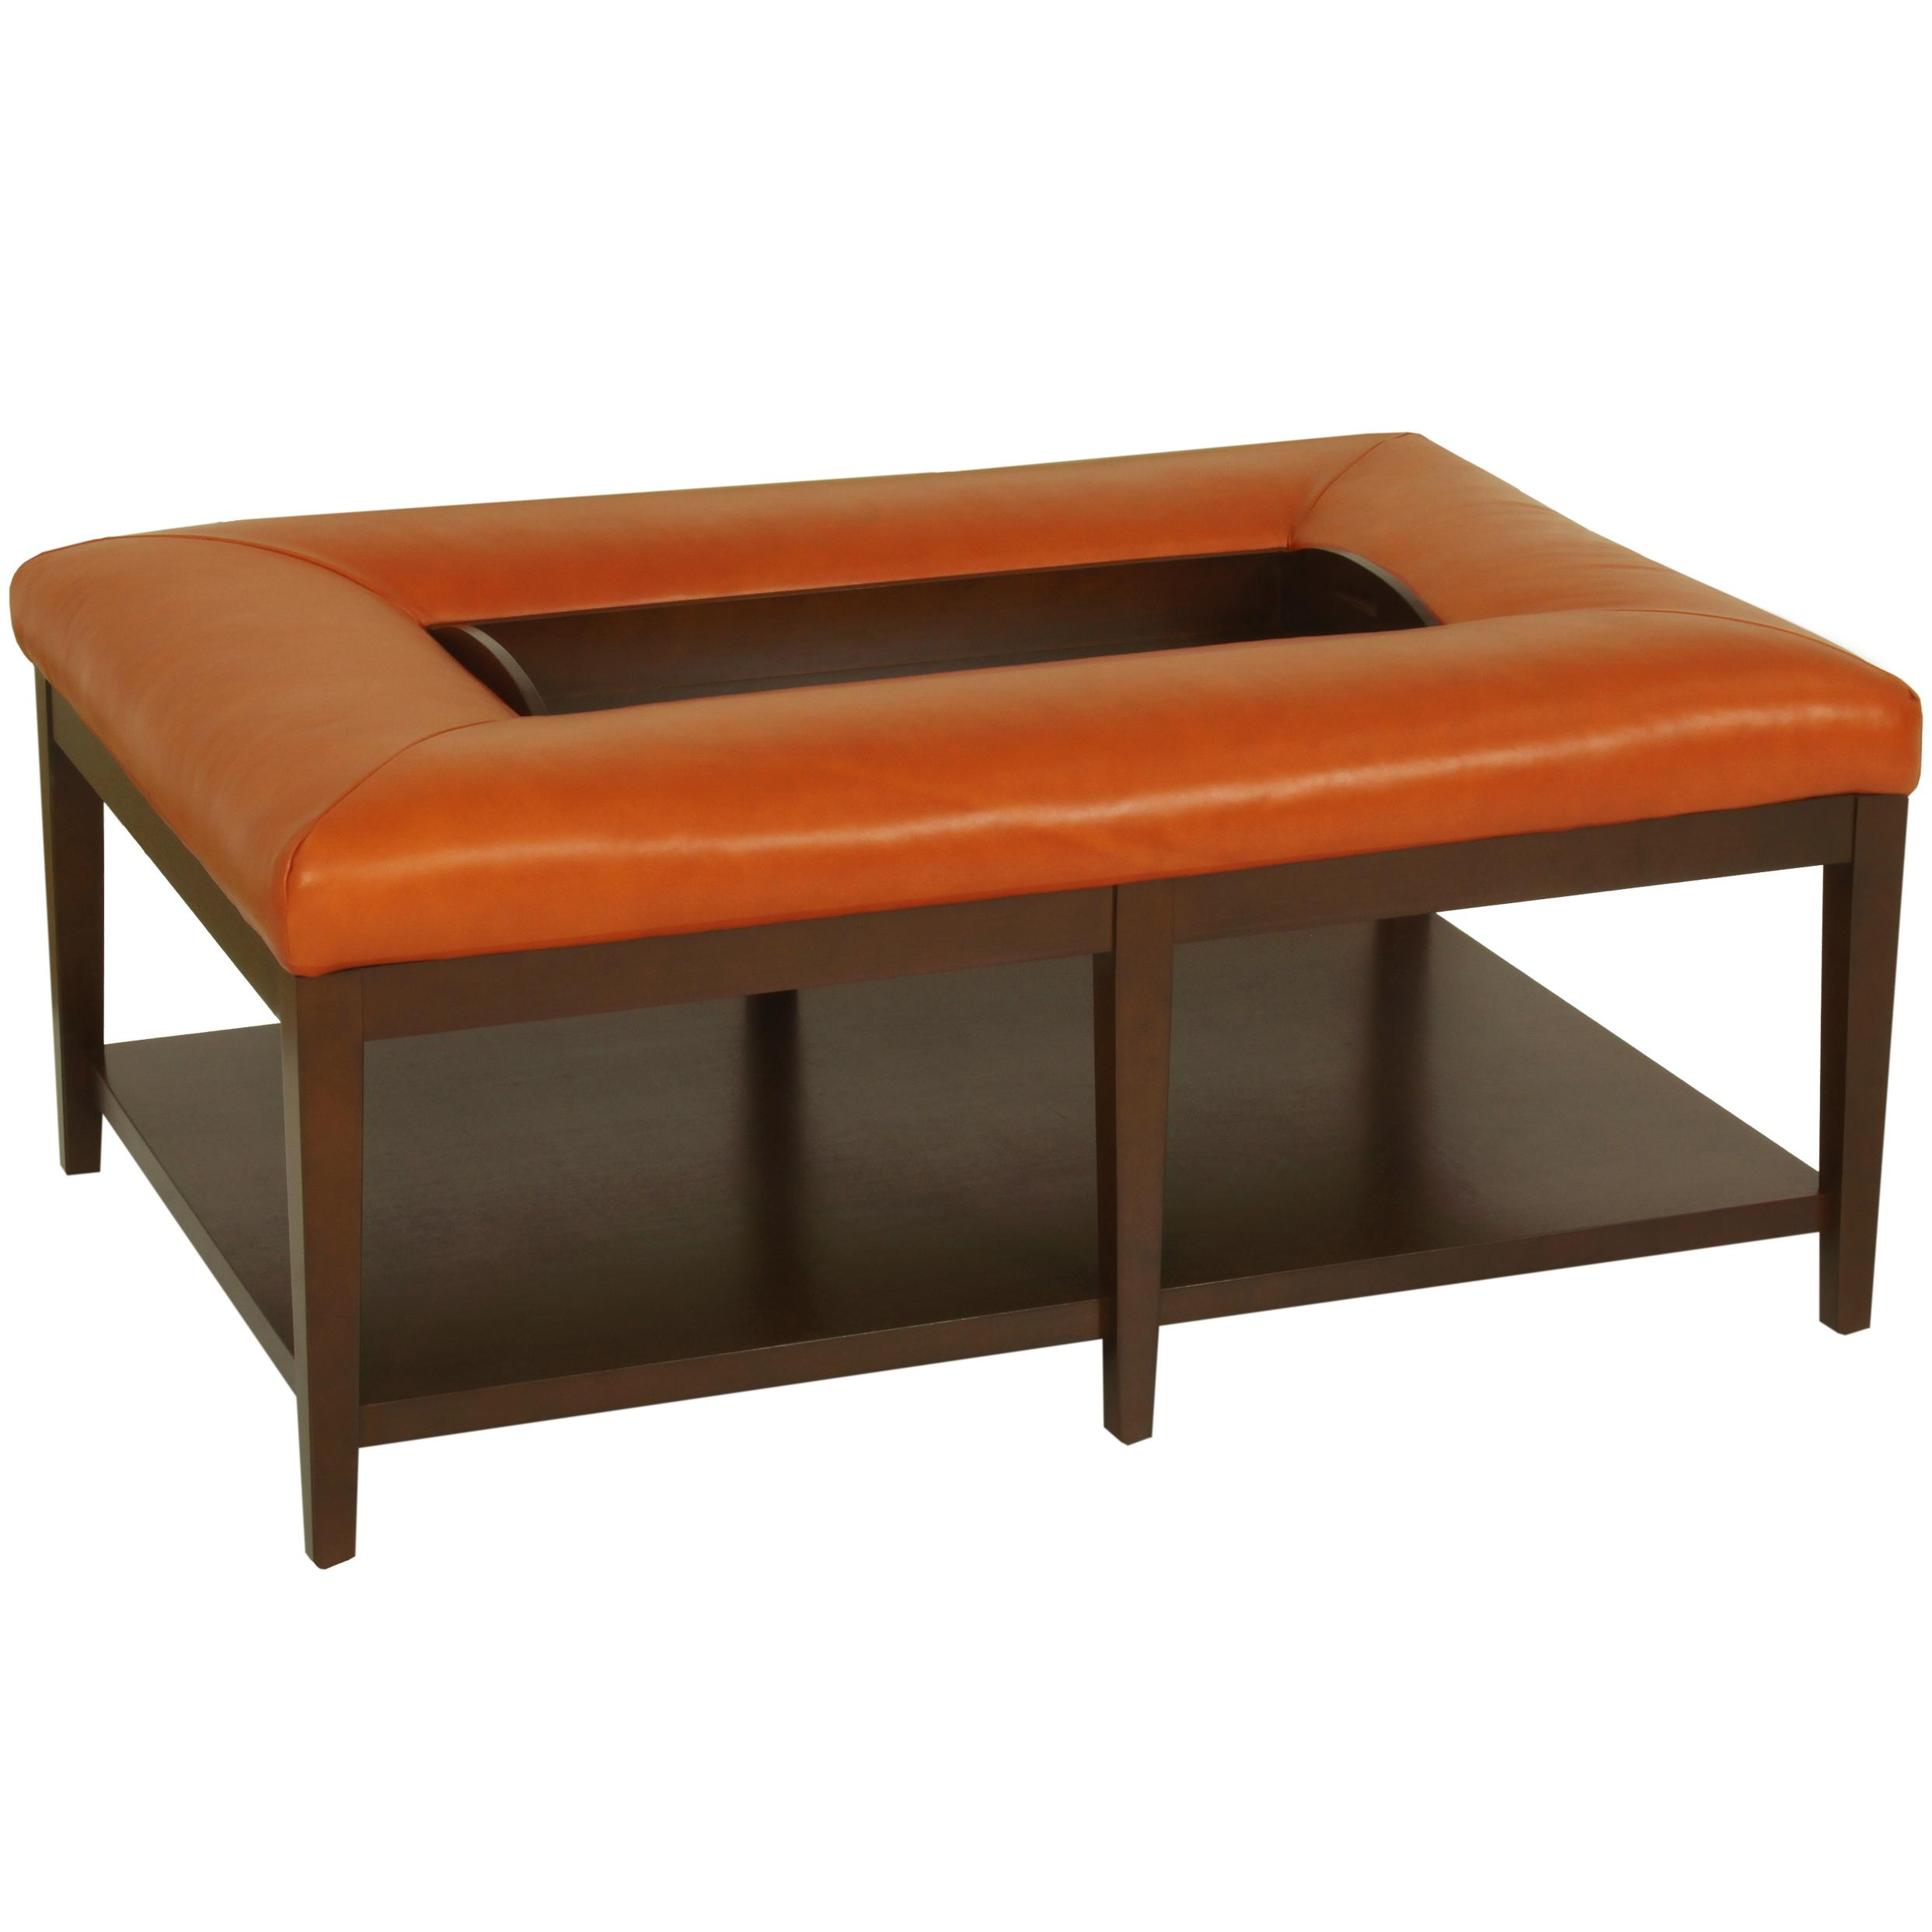 Picture of: Norwalk Shelton Contemporary Ottoman Bench With Solid Base And Removable Tray Lagniappe Home Store Ottoman